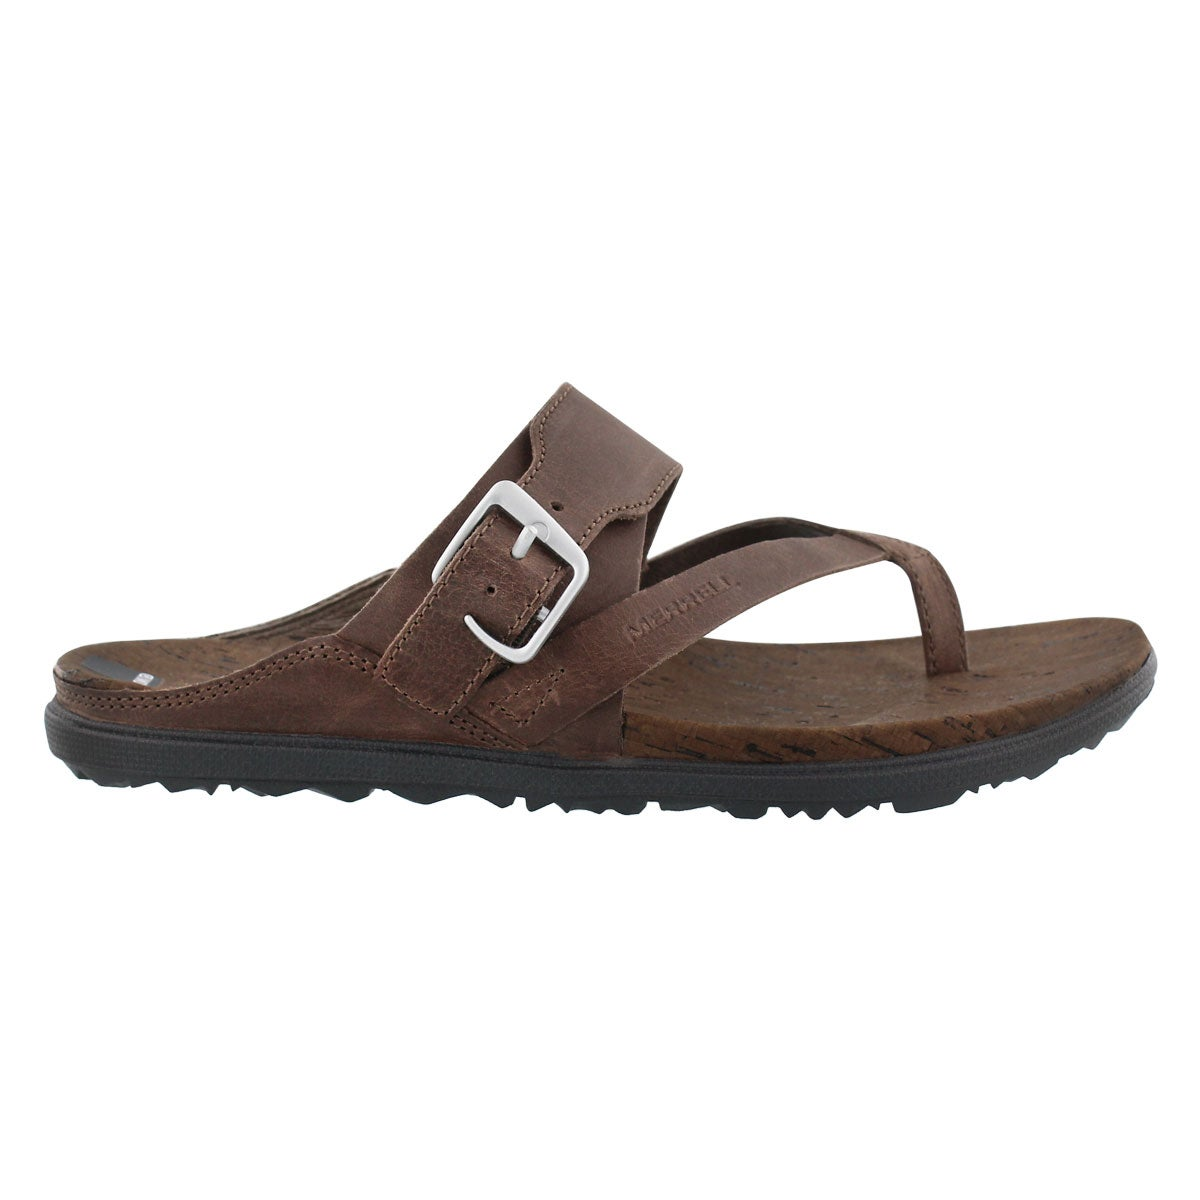 Lds Around Town Buckle brn thong sandal